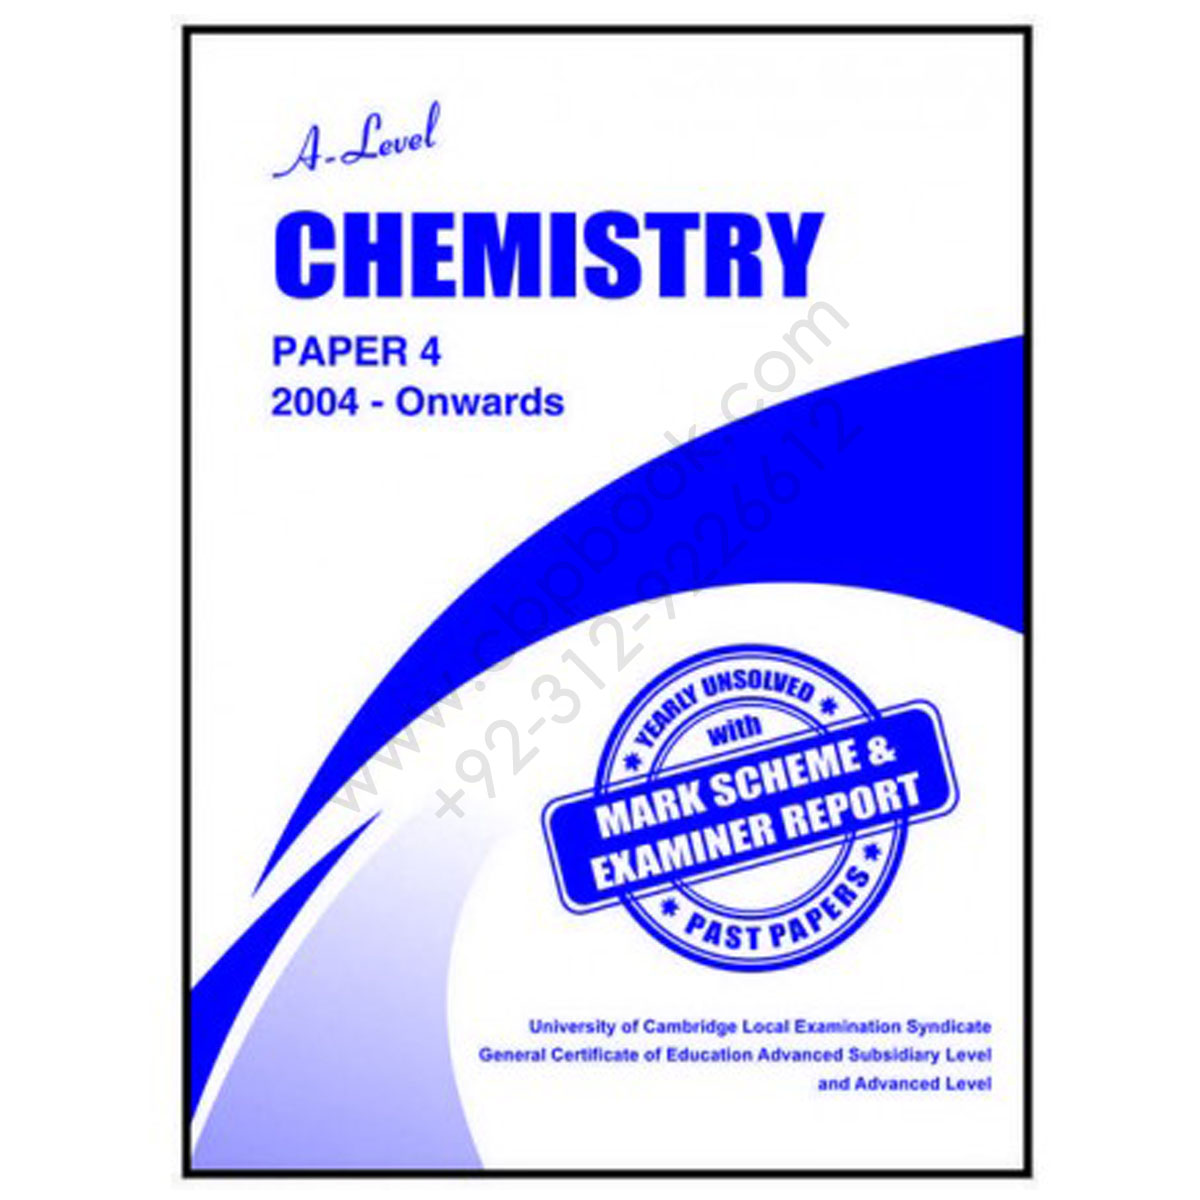 A Level CHEMISTRY Paper 4 Yearly Unsolved with Mark Scheme 2012 - Nov 2018